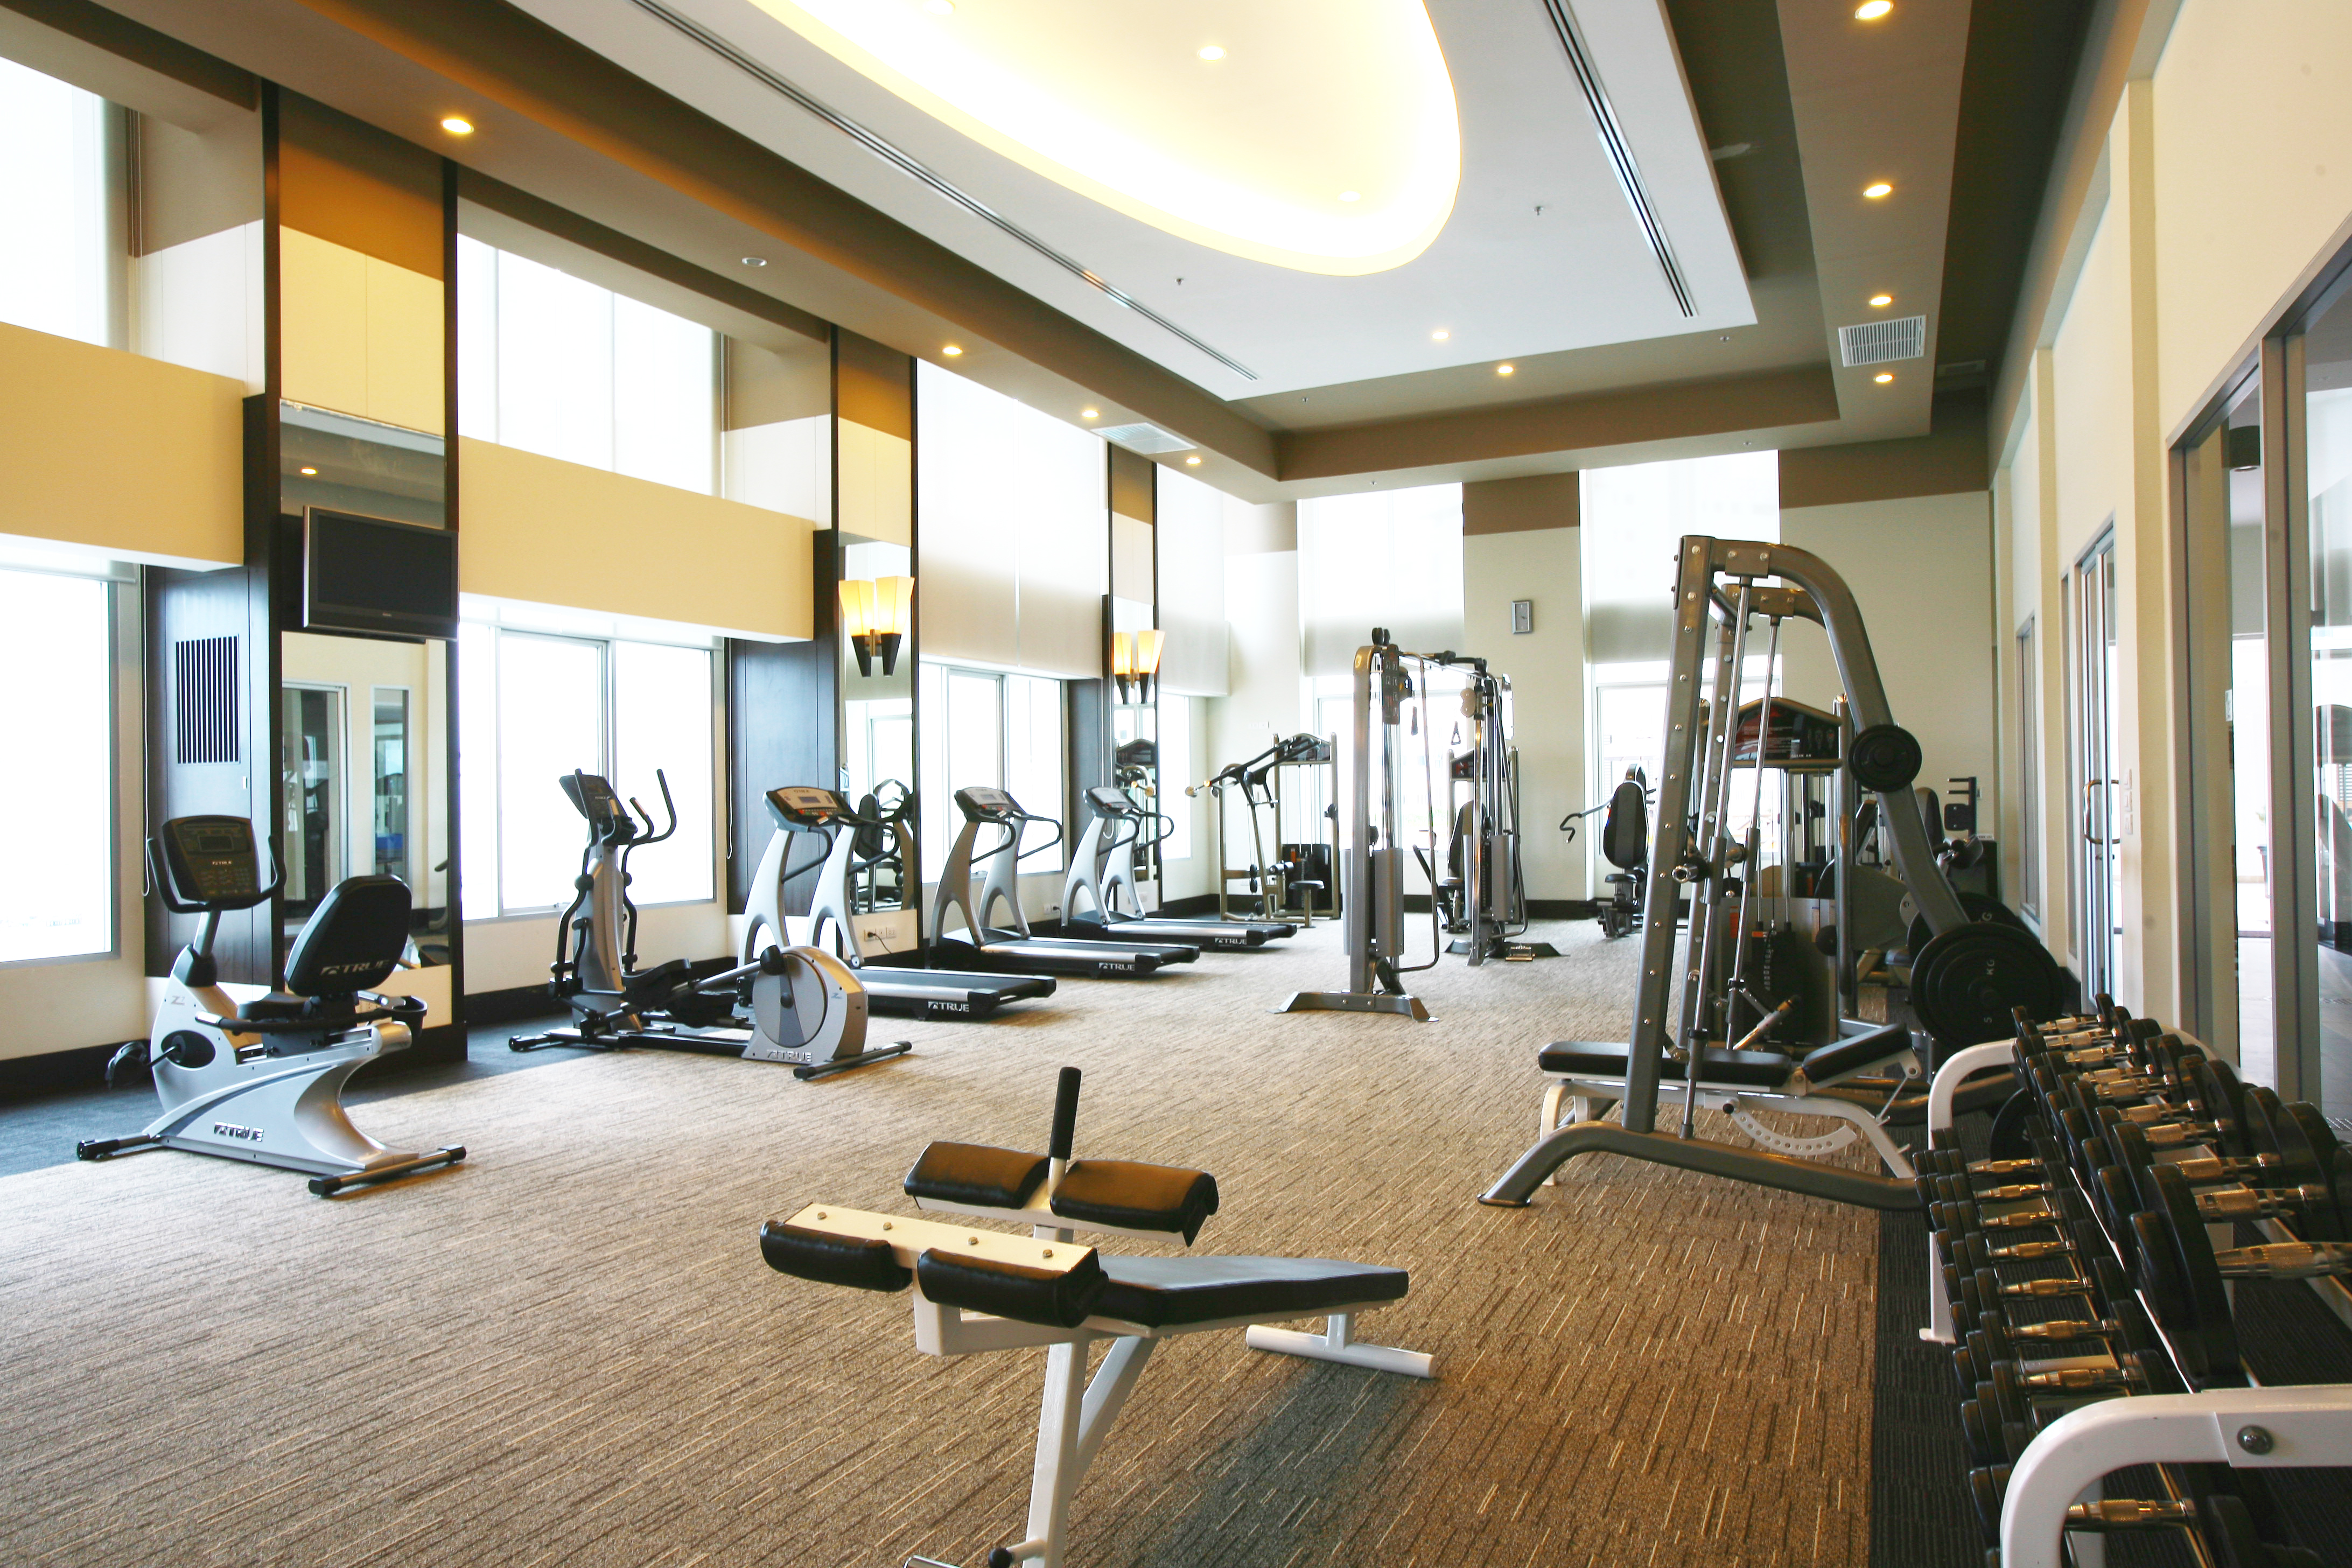 Fitness centre hampton hotel - 24 hour fitness with swimming pool locations ...